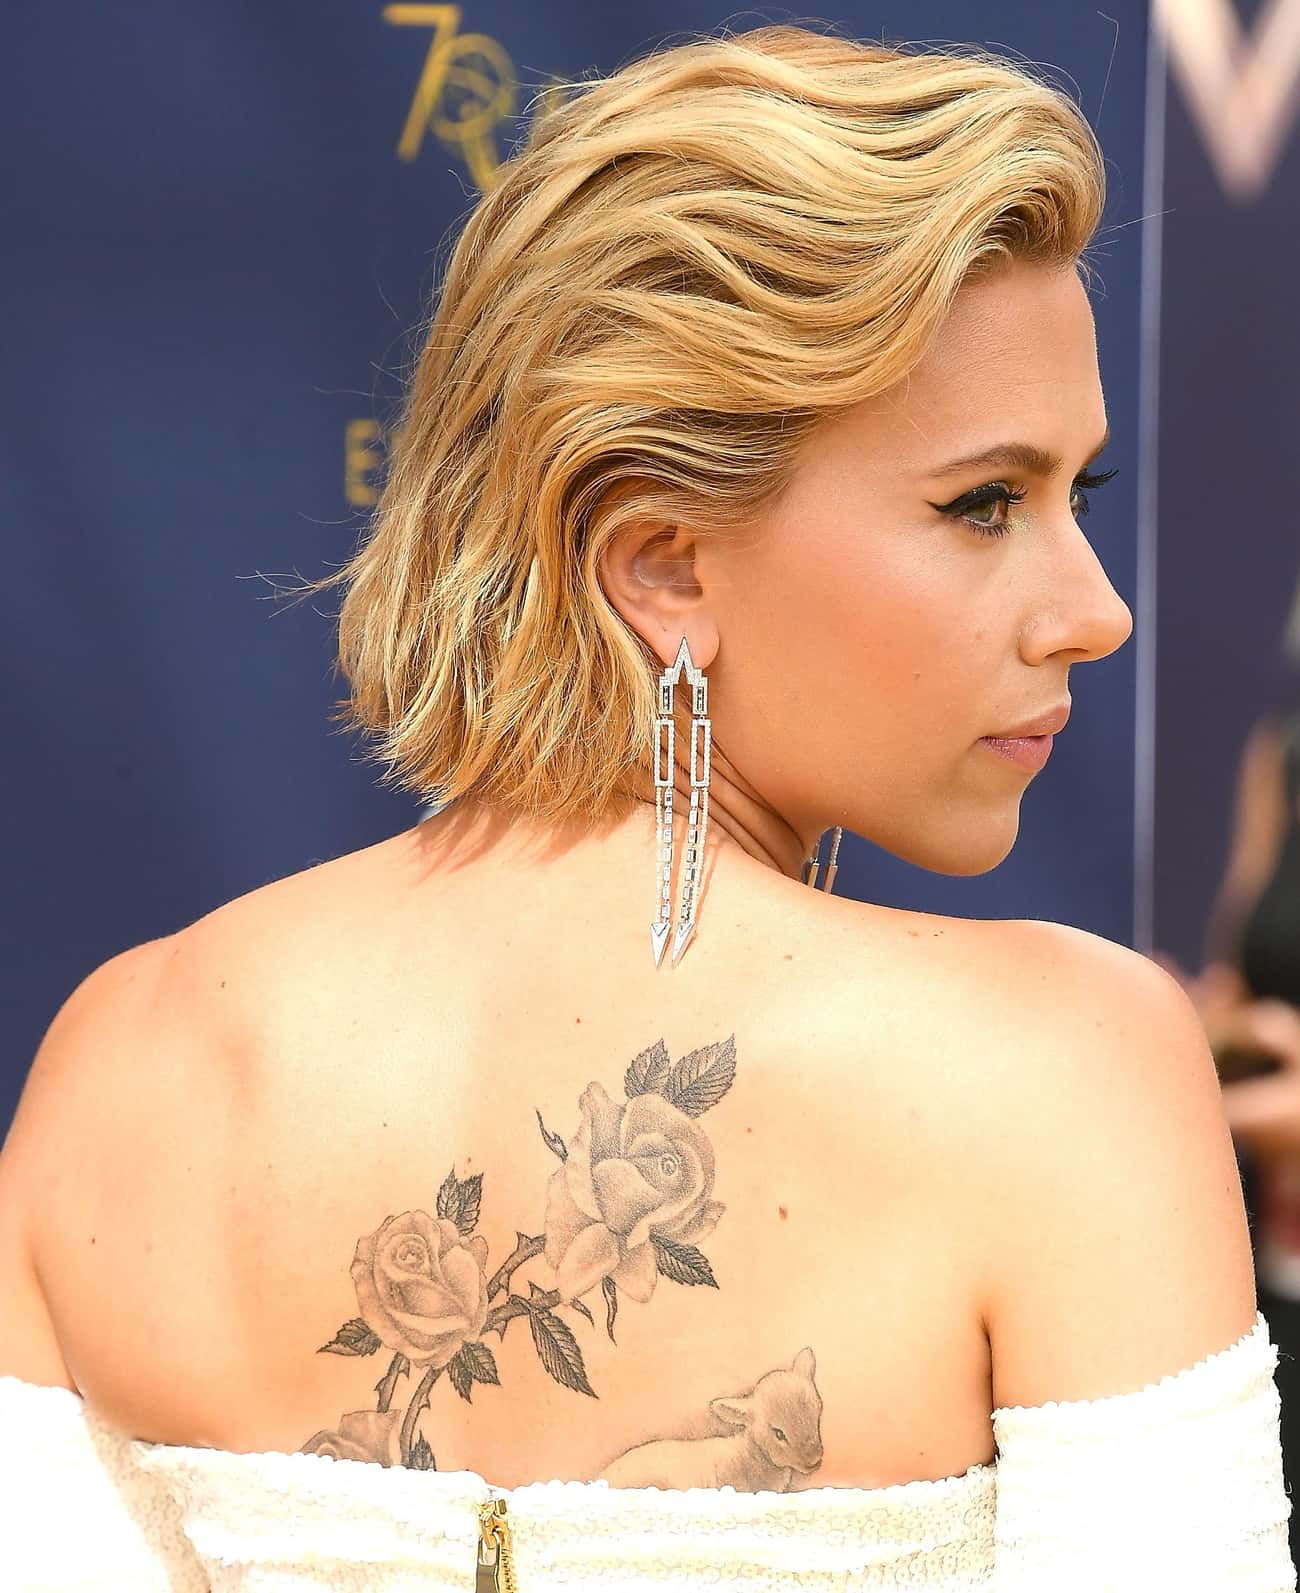 Scarlett Johansson is listed (or ranked) 1 on the list 30 Celebrities You Didn't Know Had Tattoos